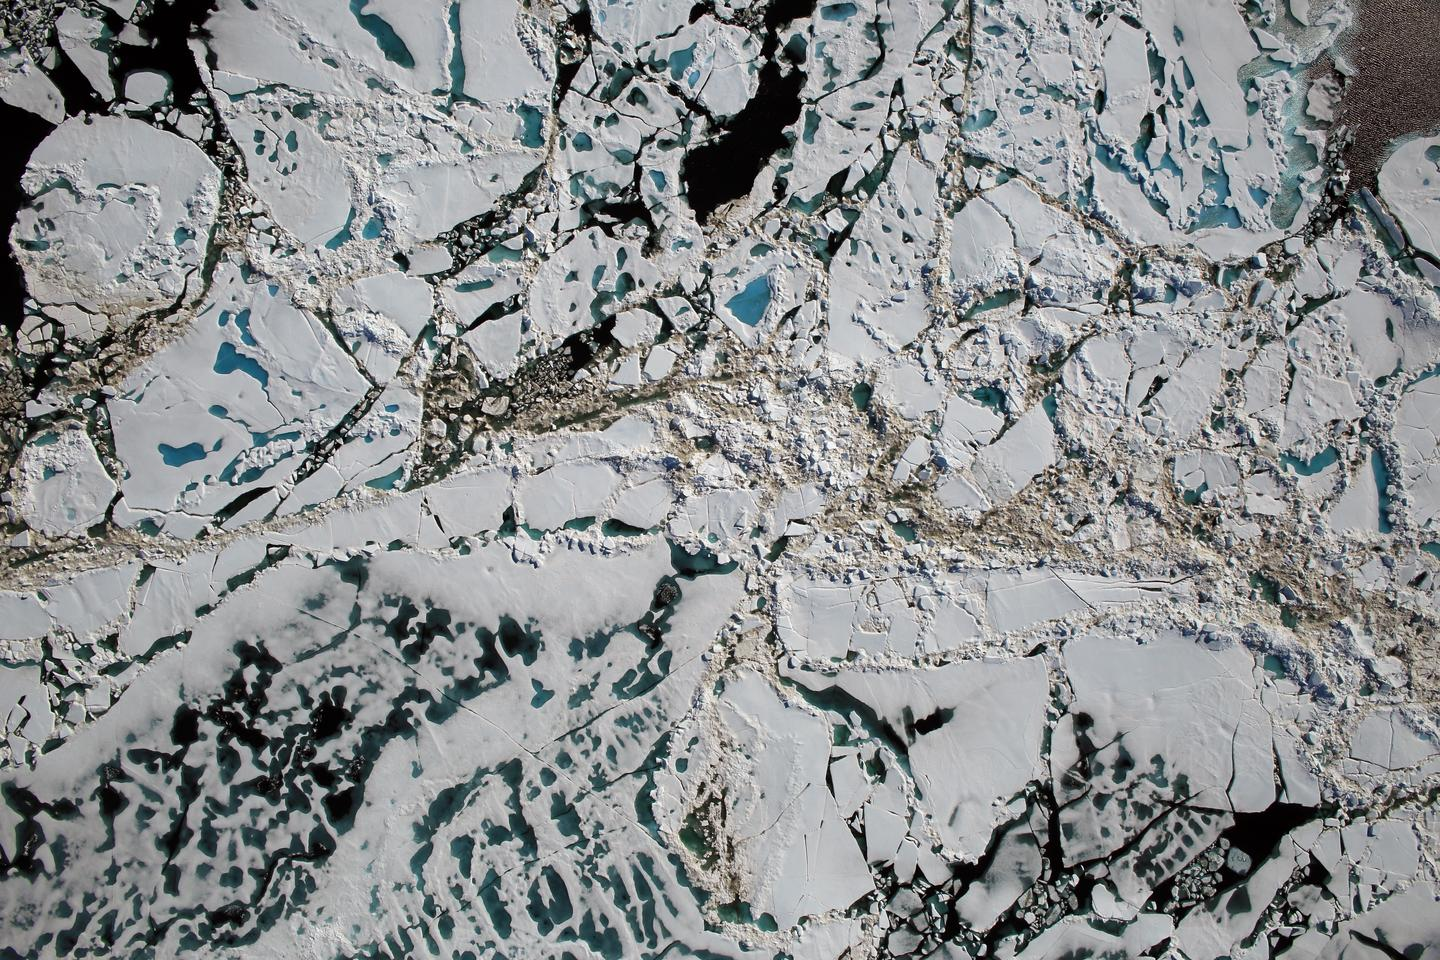 An image of Arctic sea ice captured from 1,500 feet during an Operation IceBridge mission